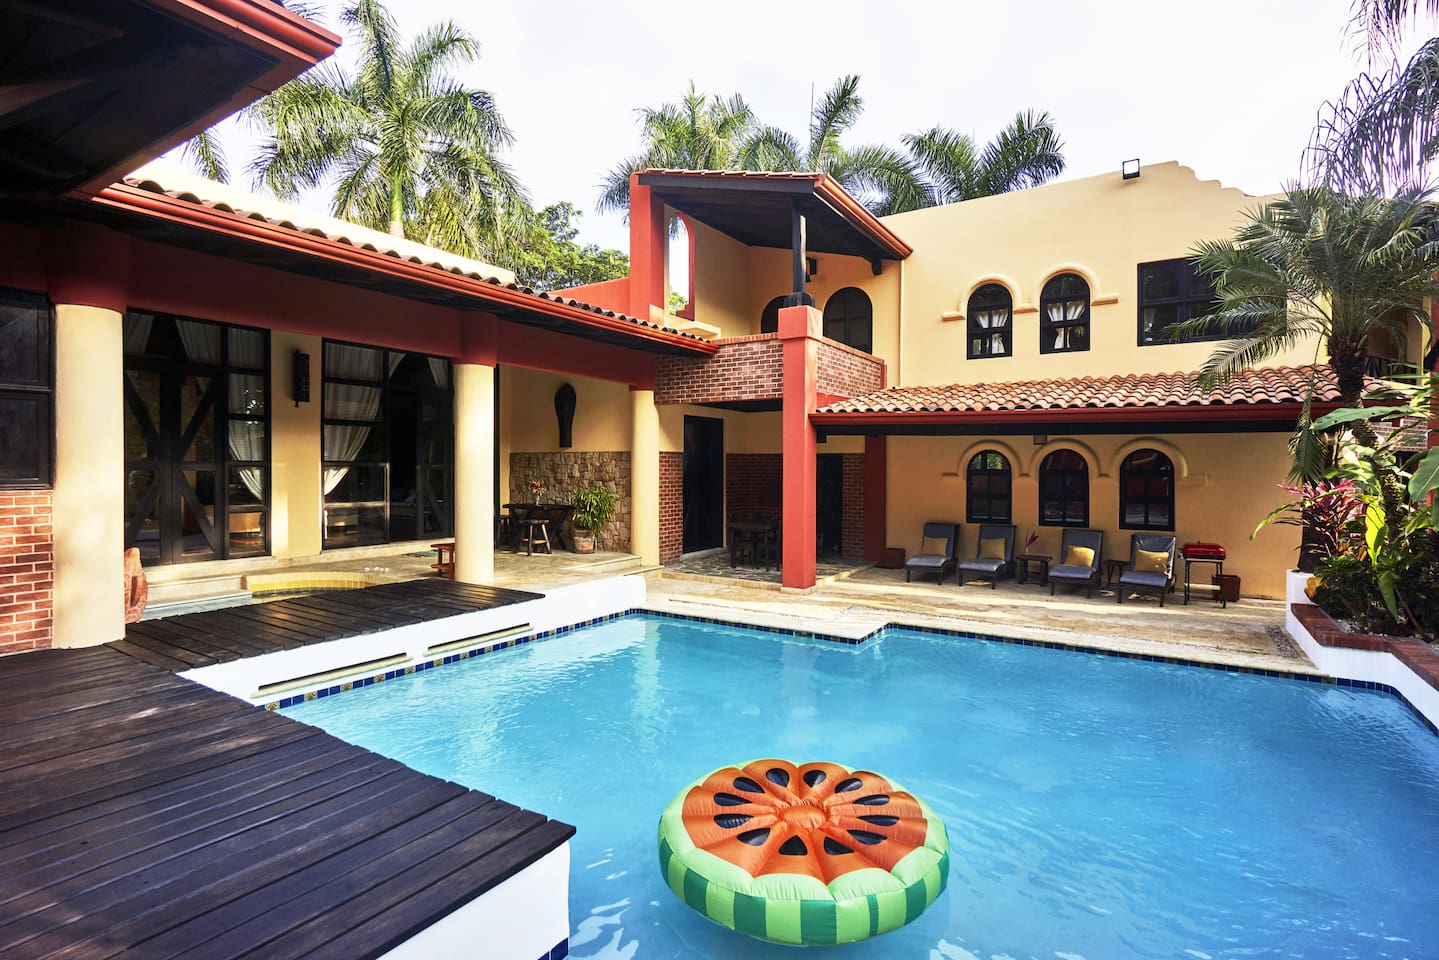 With the common areas to the left, the pool is centrally located and easily accessible for all guests